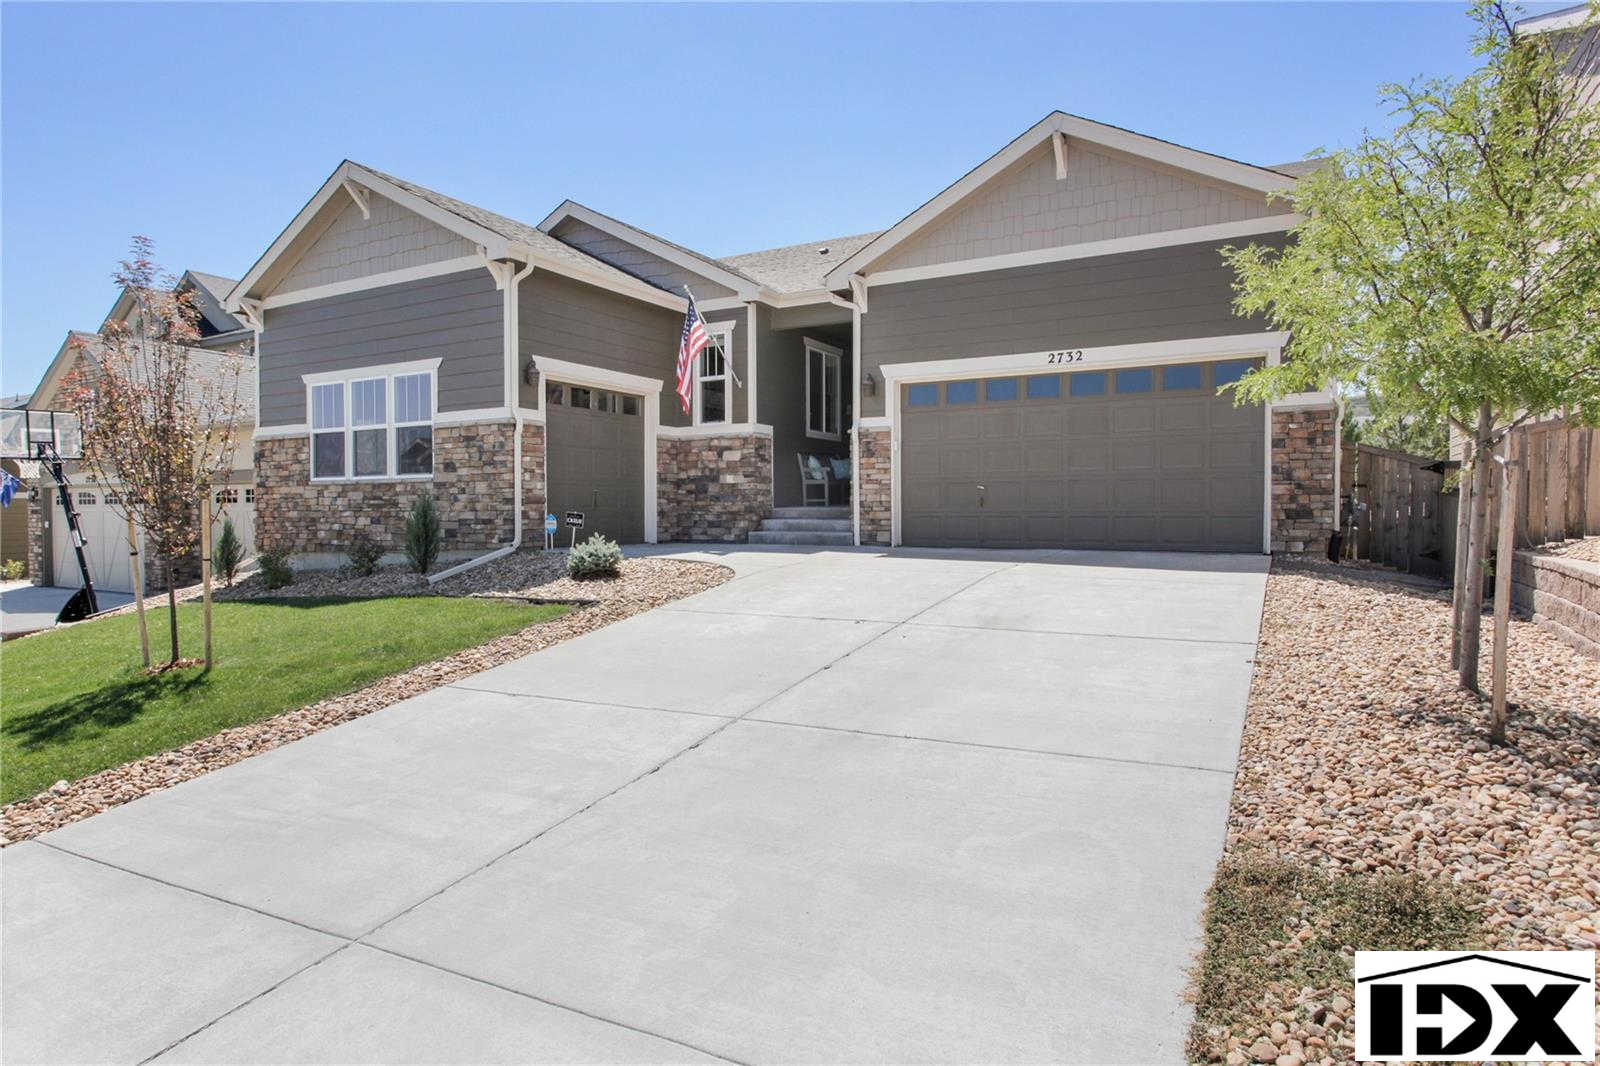 2732 Rising Moon Way, Castle Rock, CO 80109 now has a new price of $649,900!